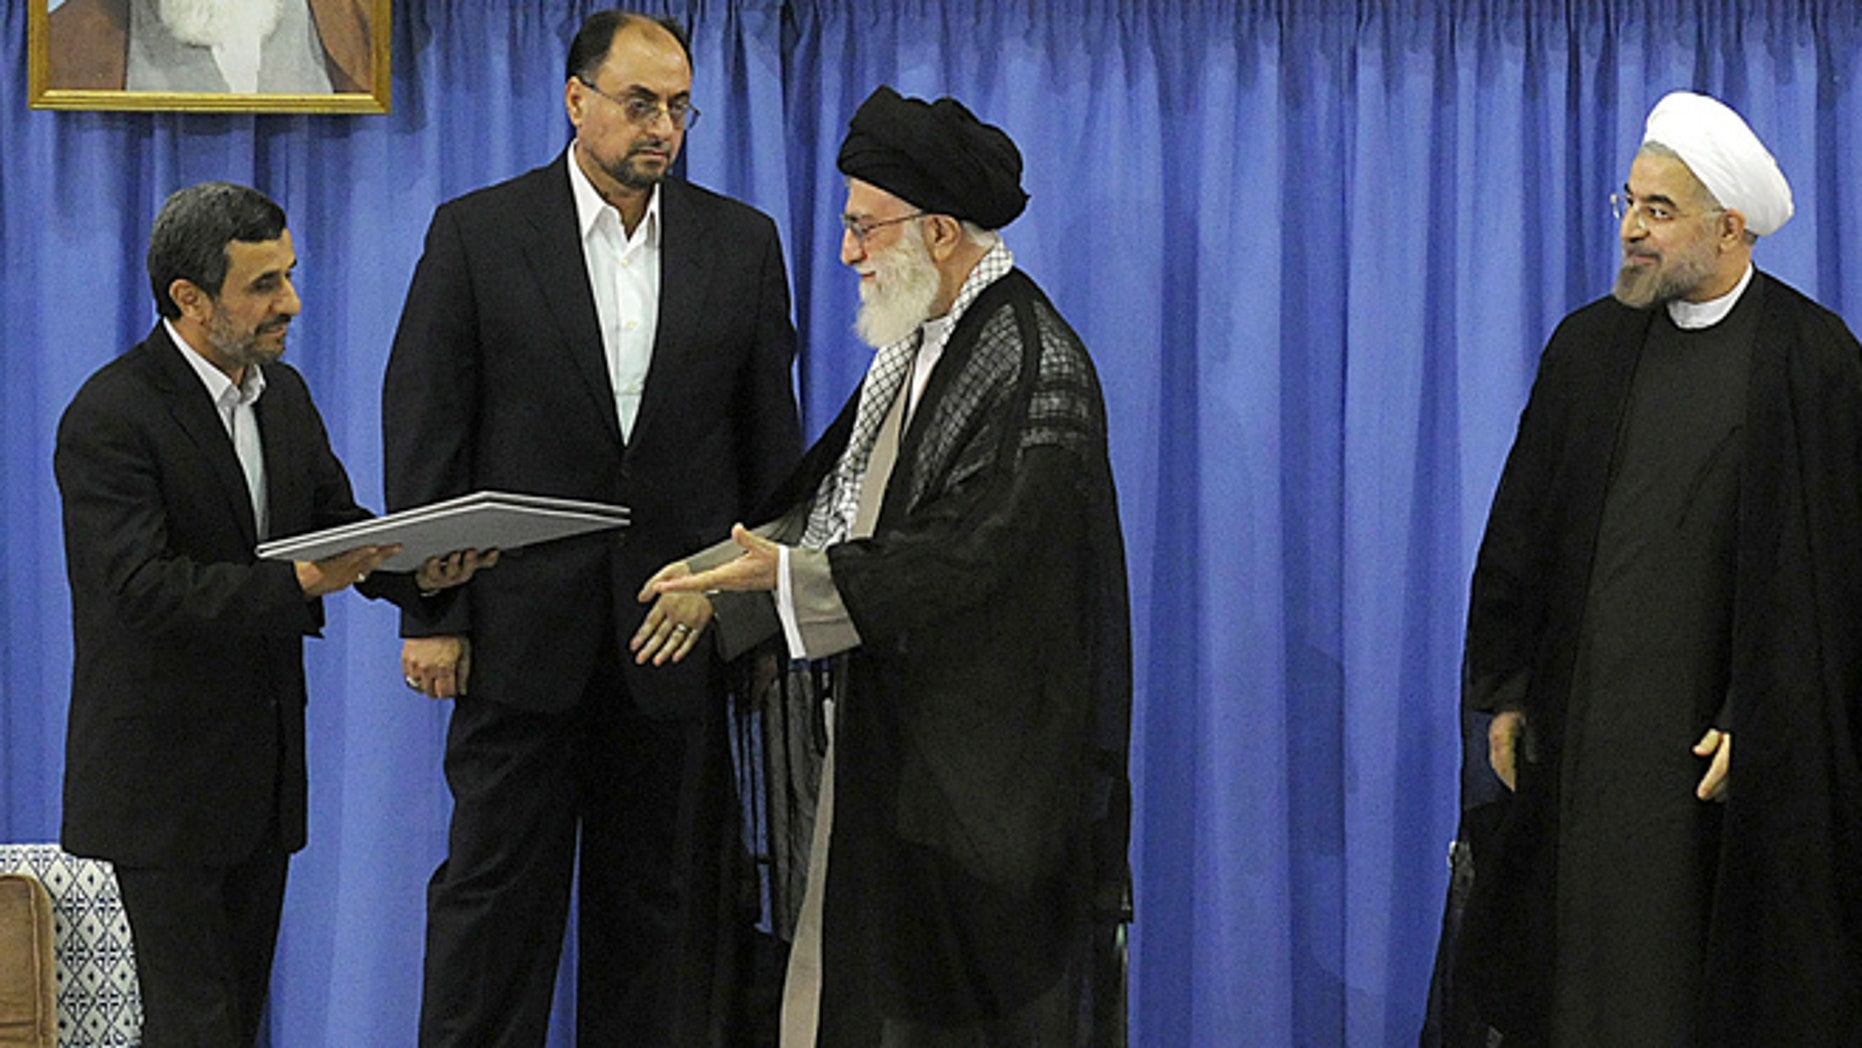 Aug. 3, 2013: In this picture released by the official website of the Iranian supreme leader's office, outgoing President Mahmoud Ahmadinejad, left, delivers the official seal of approval of Supreme Leader Ayatollah Ali Khamenei, center, to give to President-elect Hasan Rouhani, right, in an official endorsement ceremony, in Tehran, Iran.